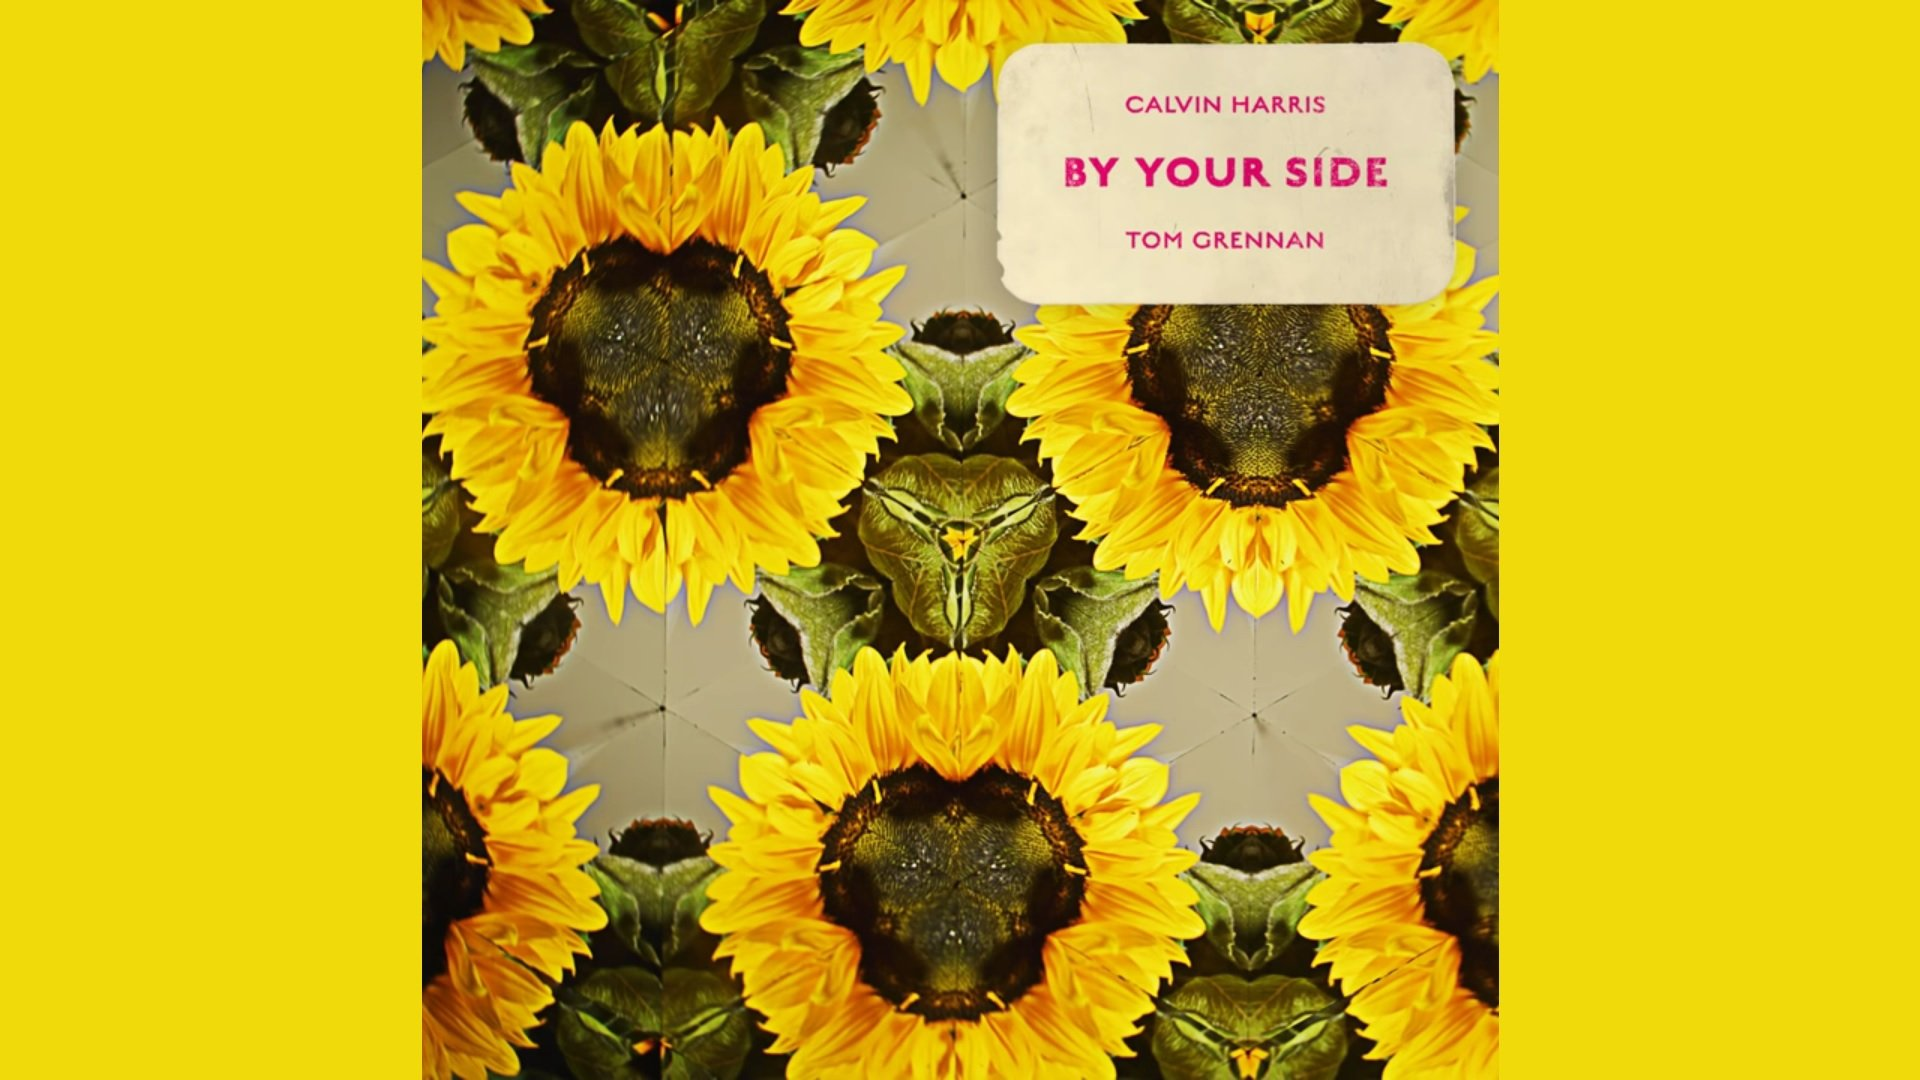 CALVIN HARRIS BY YOUR SIDE FEAT. TOM GRENNAN